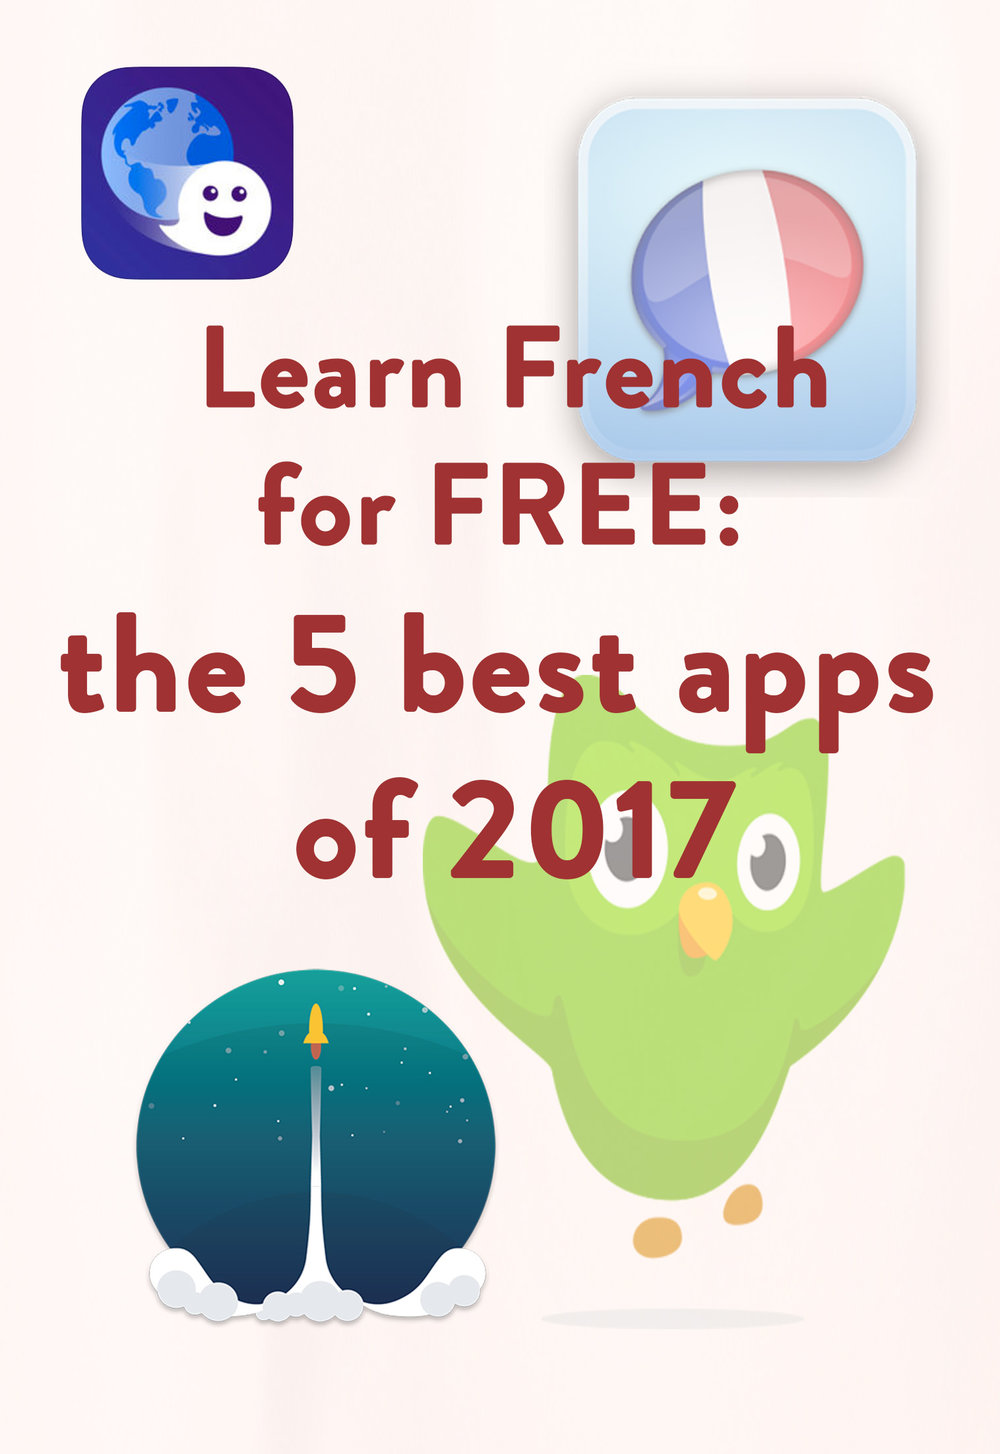 Learn French with those free apps